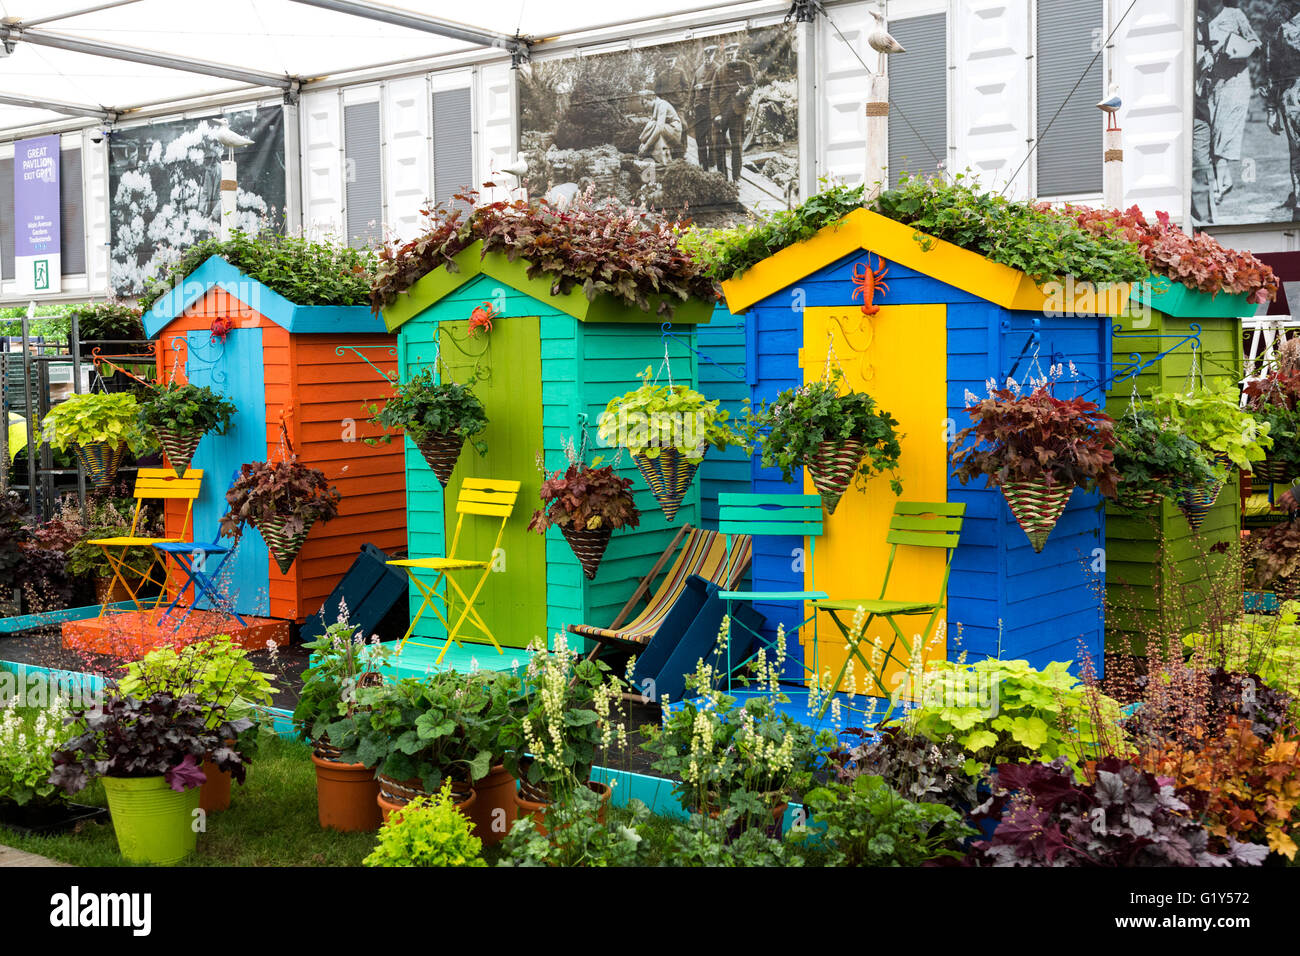 London, UK. 21 May 2016. Sheds turned into colourful beach huts ...